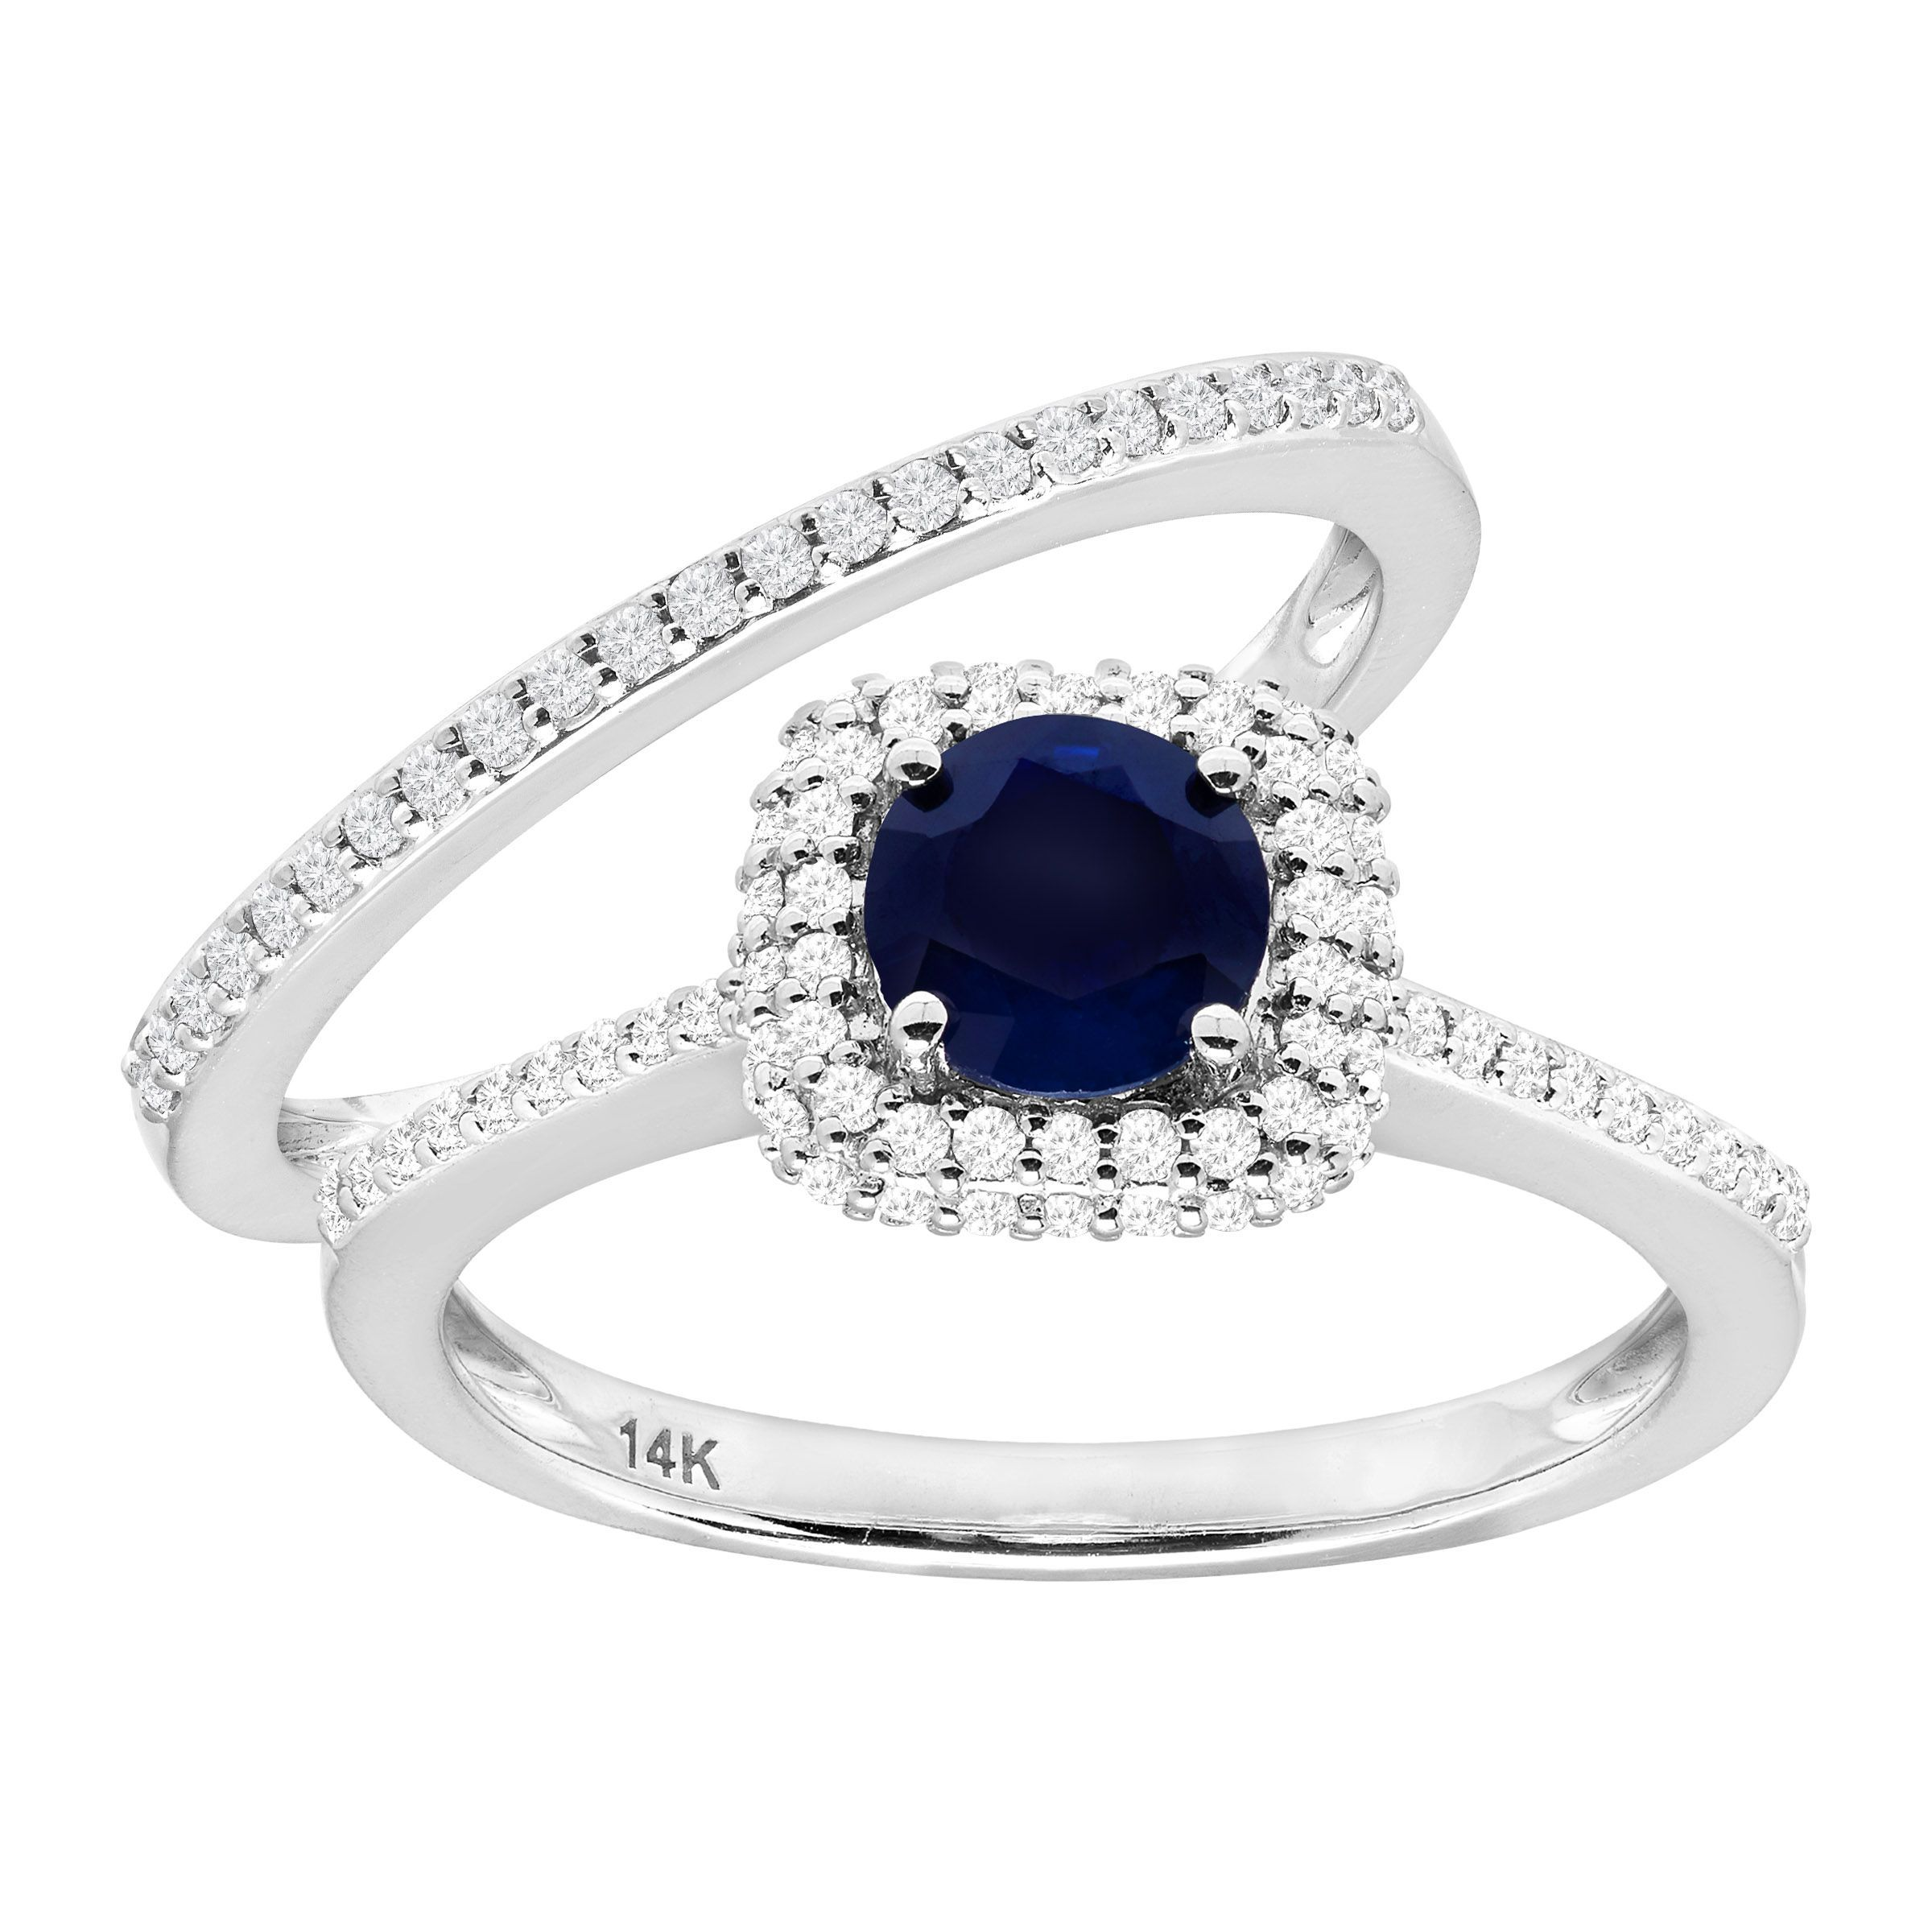 7 8 ct natural sapphire 1 2 ct diamond engagement ring. Black Bedroom Furniture Sets. Home Design Ideas